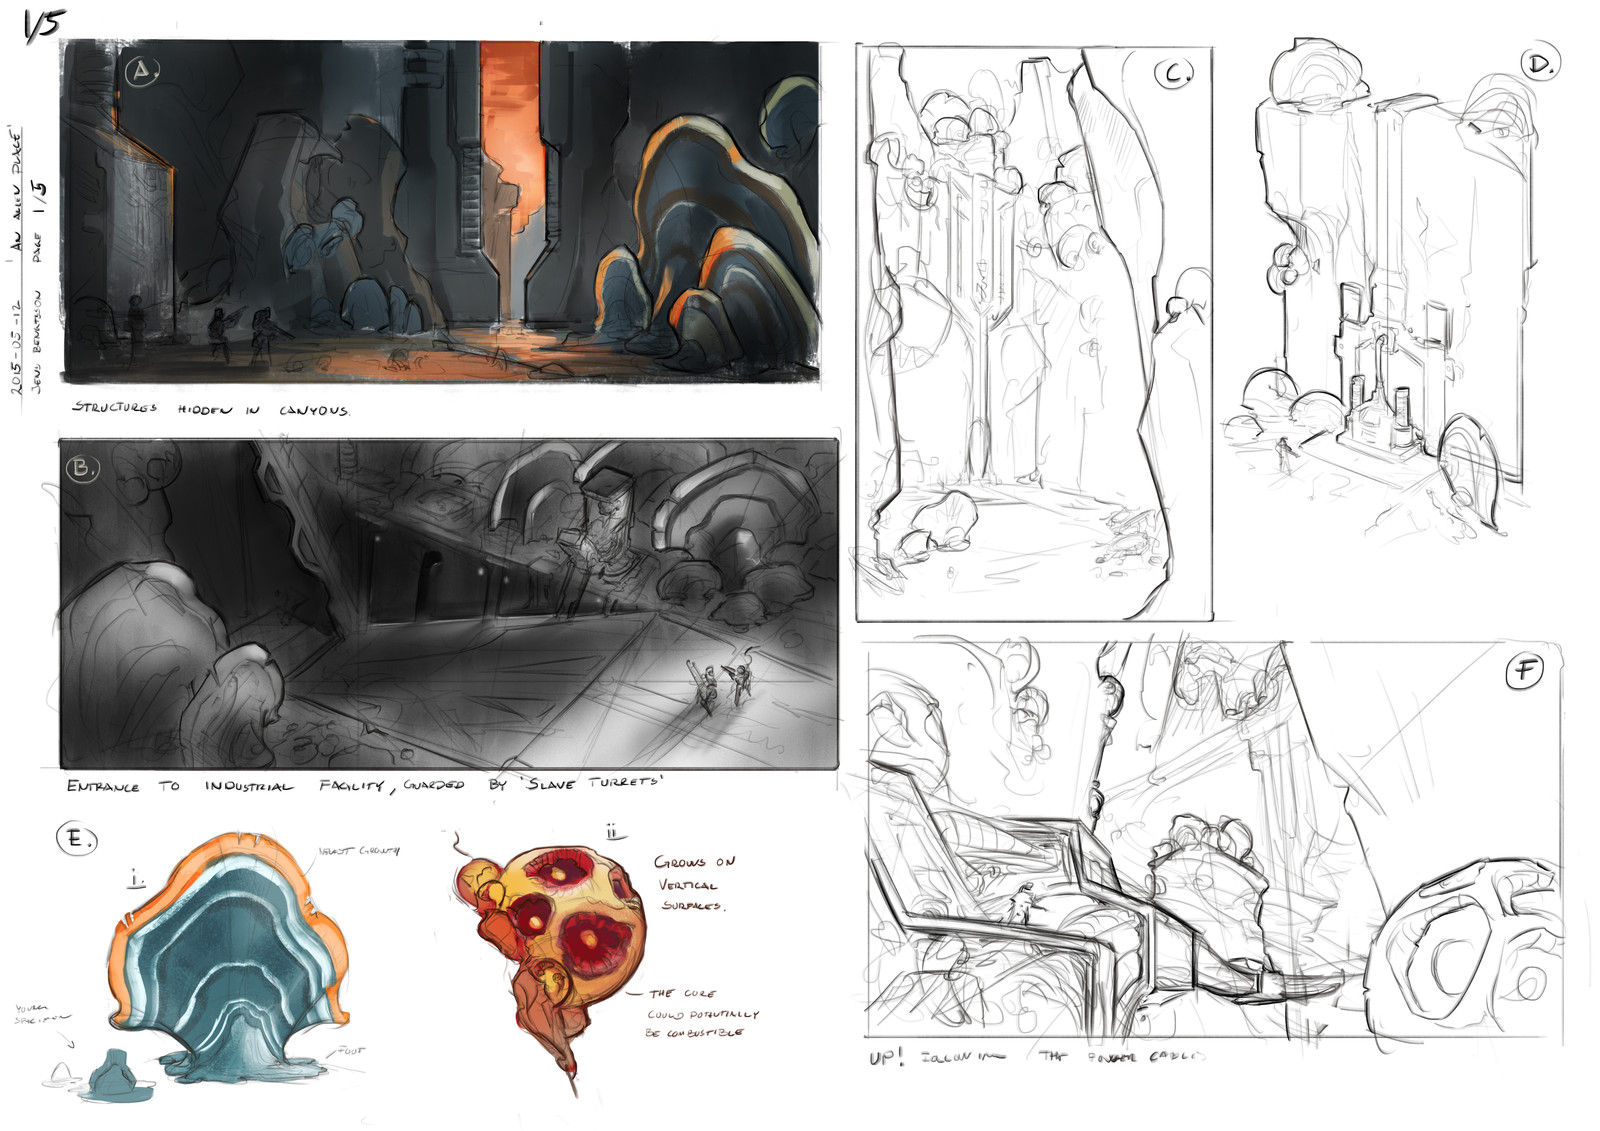 Development sketches - decaying architecture and flora